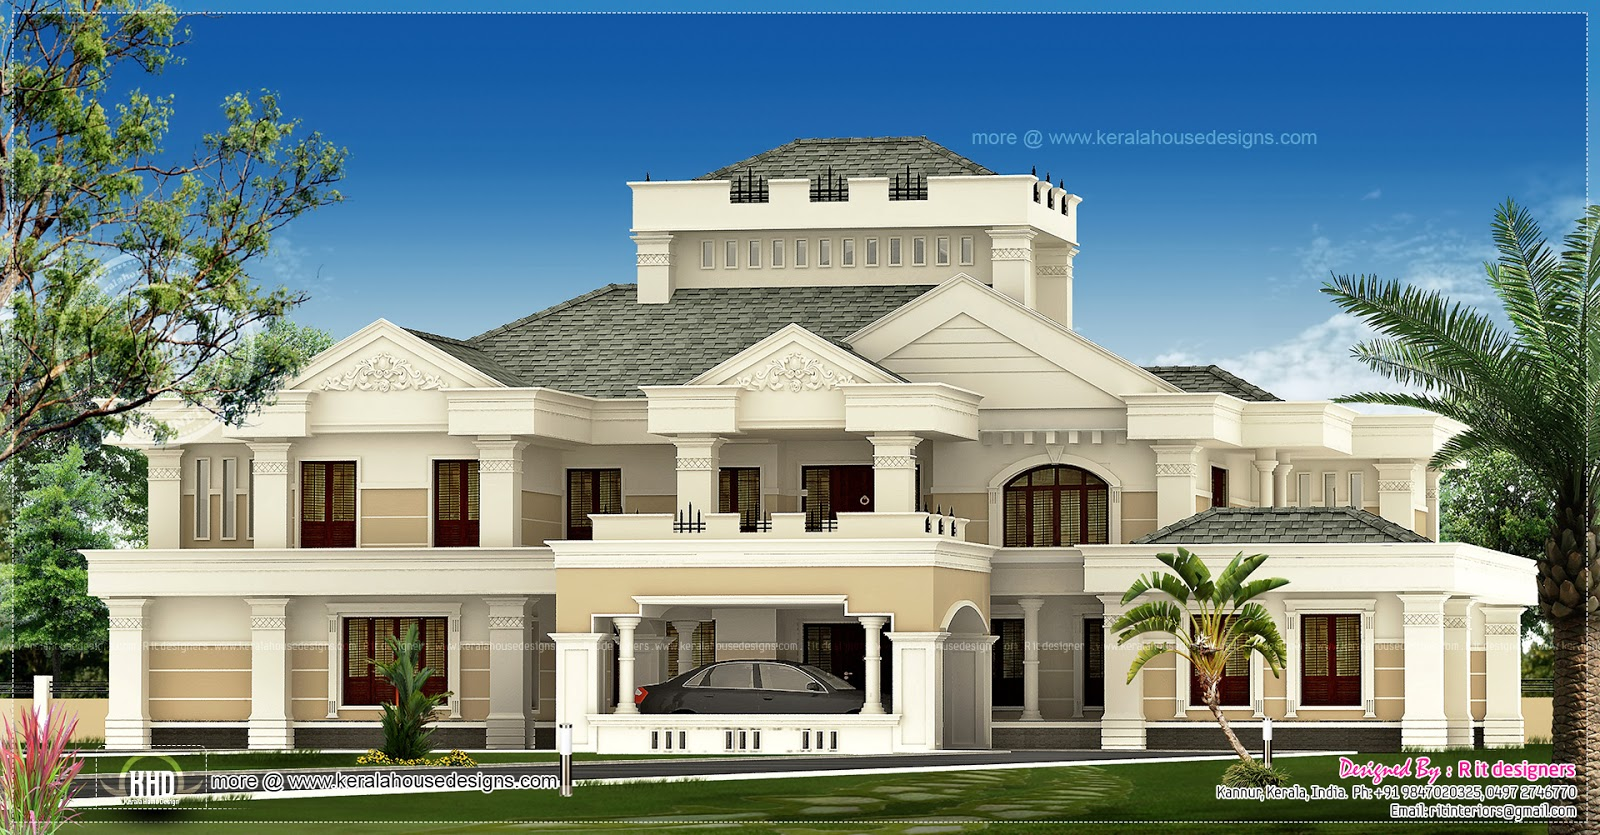 Super luxury kerala house exterior house design plans for Home architecture design kerala